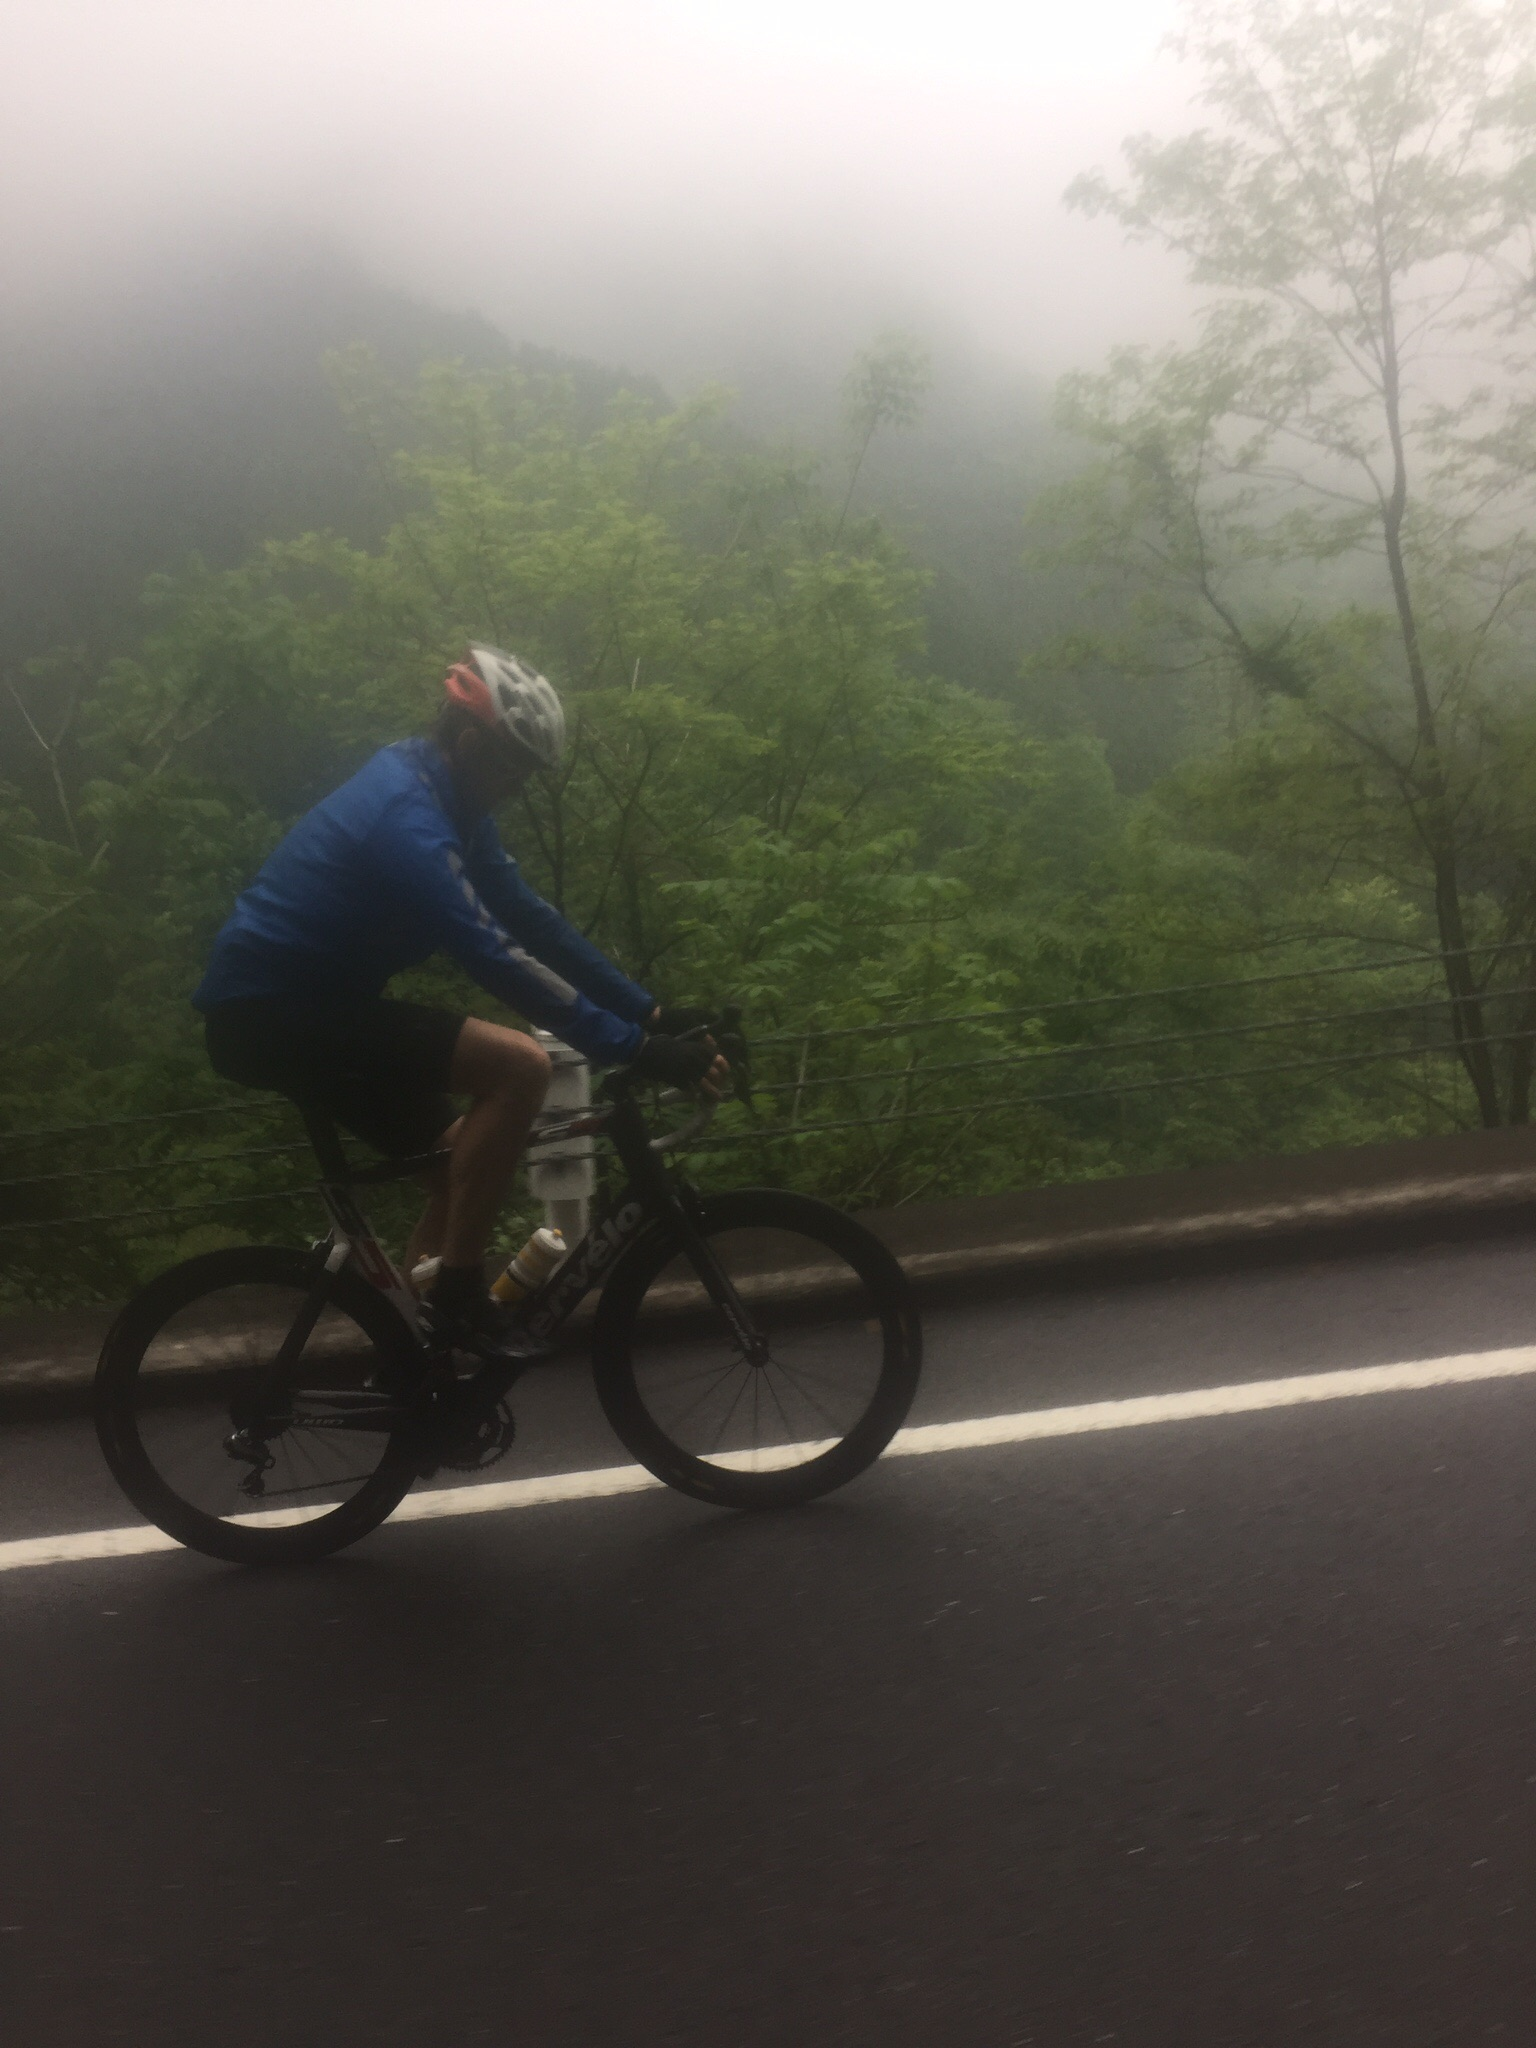 Danno pushing through the rain and low level fog - had a cracking day on the bike!